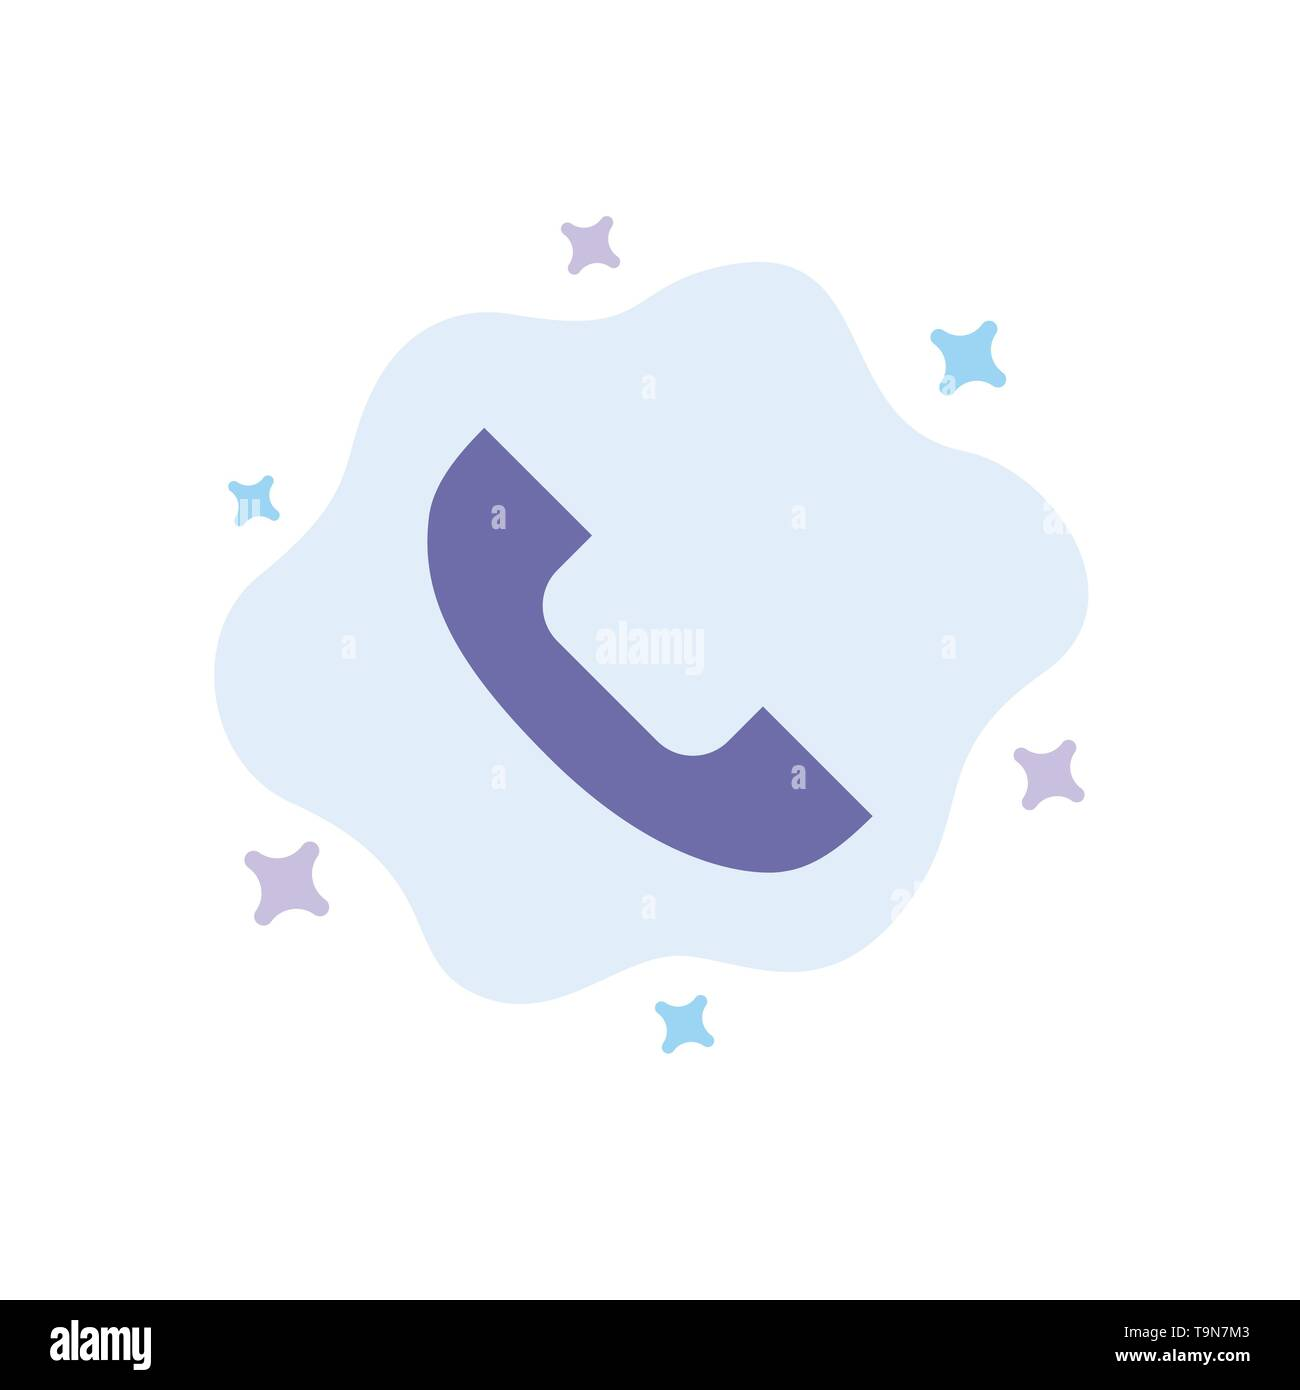 Call, Phone, Telephone, Mobile Blue Icon on Abstract Cloud Background - Stock Image